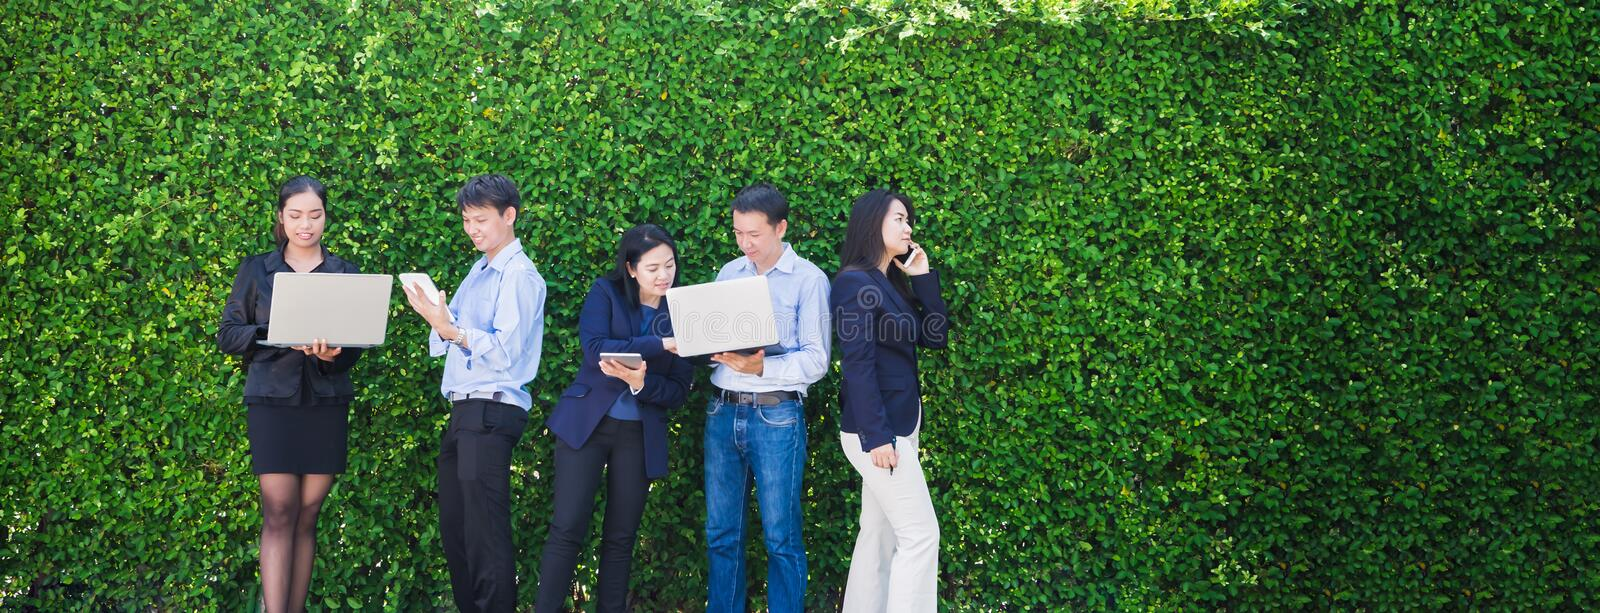 Businesswoman and businessman working outside office using lapto stock images